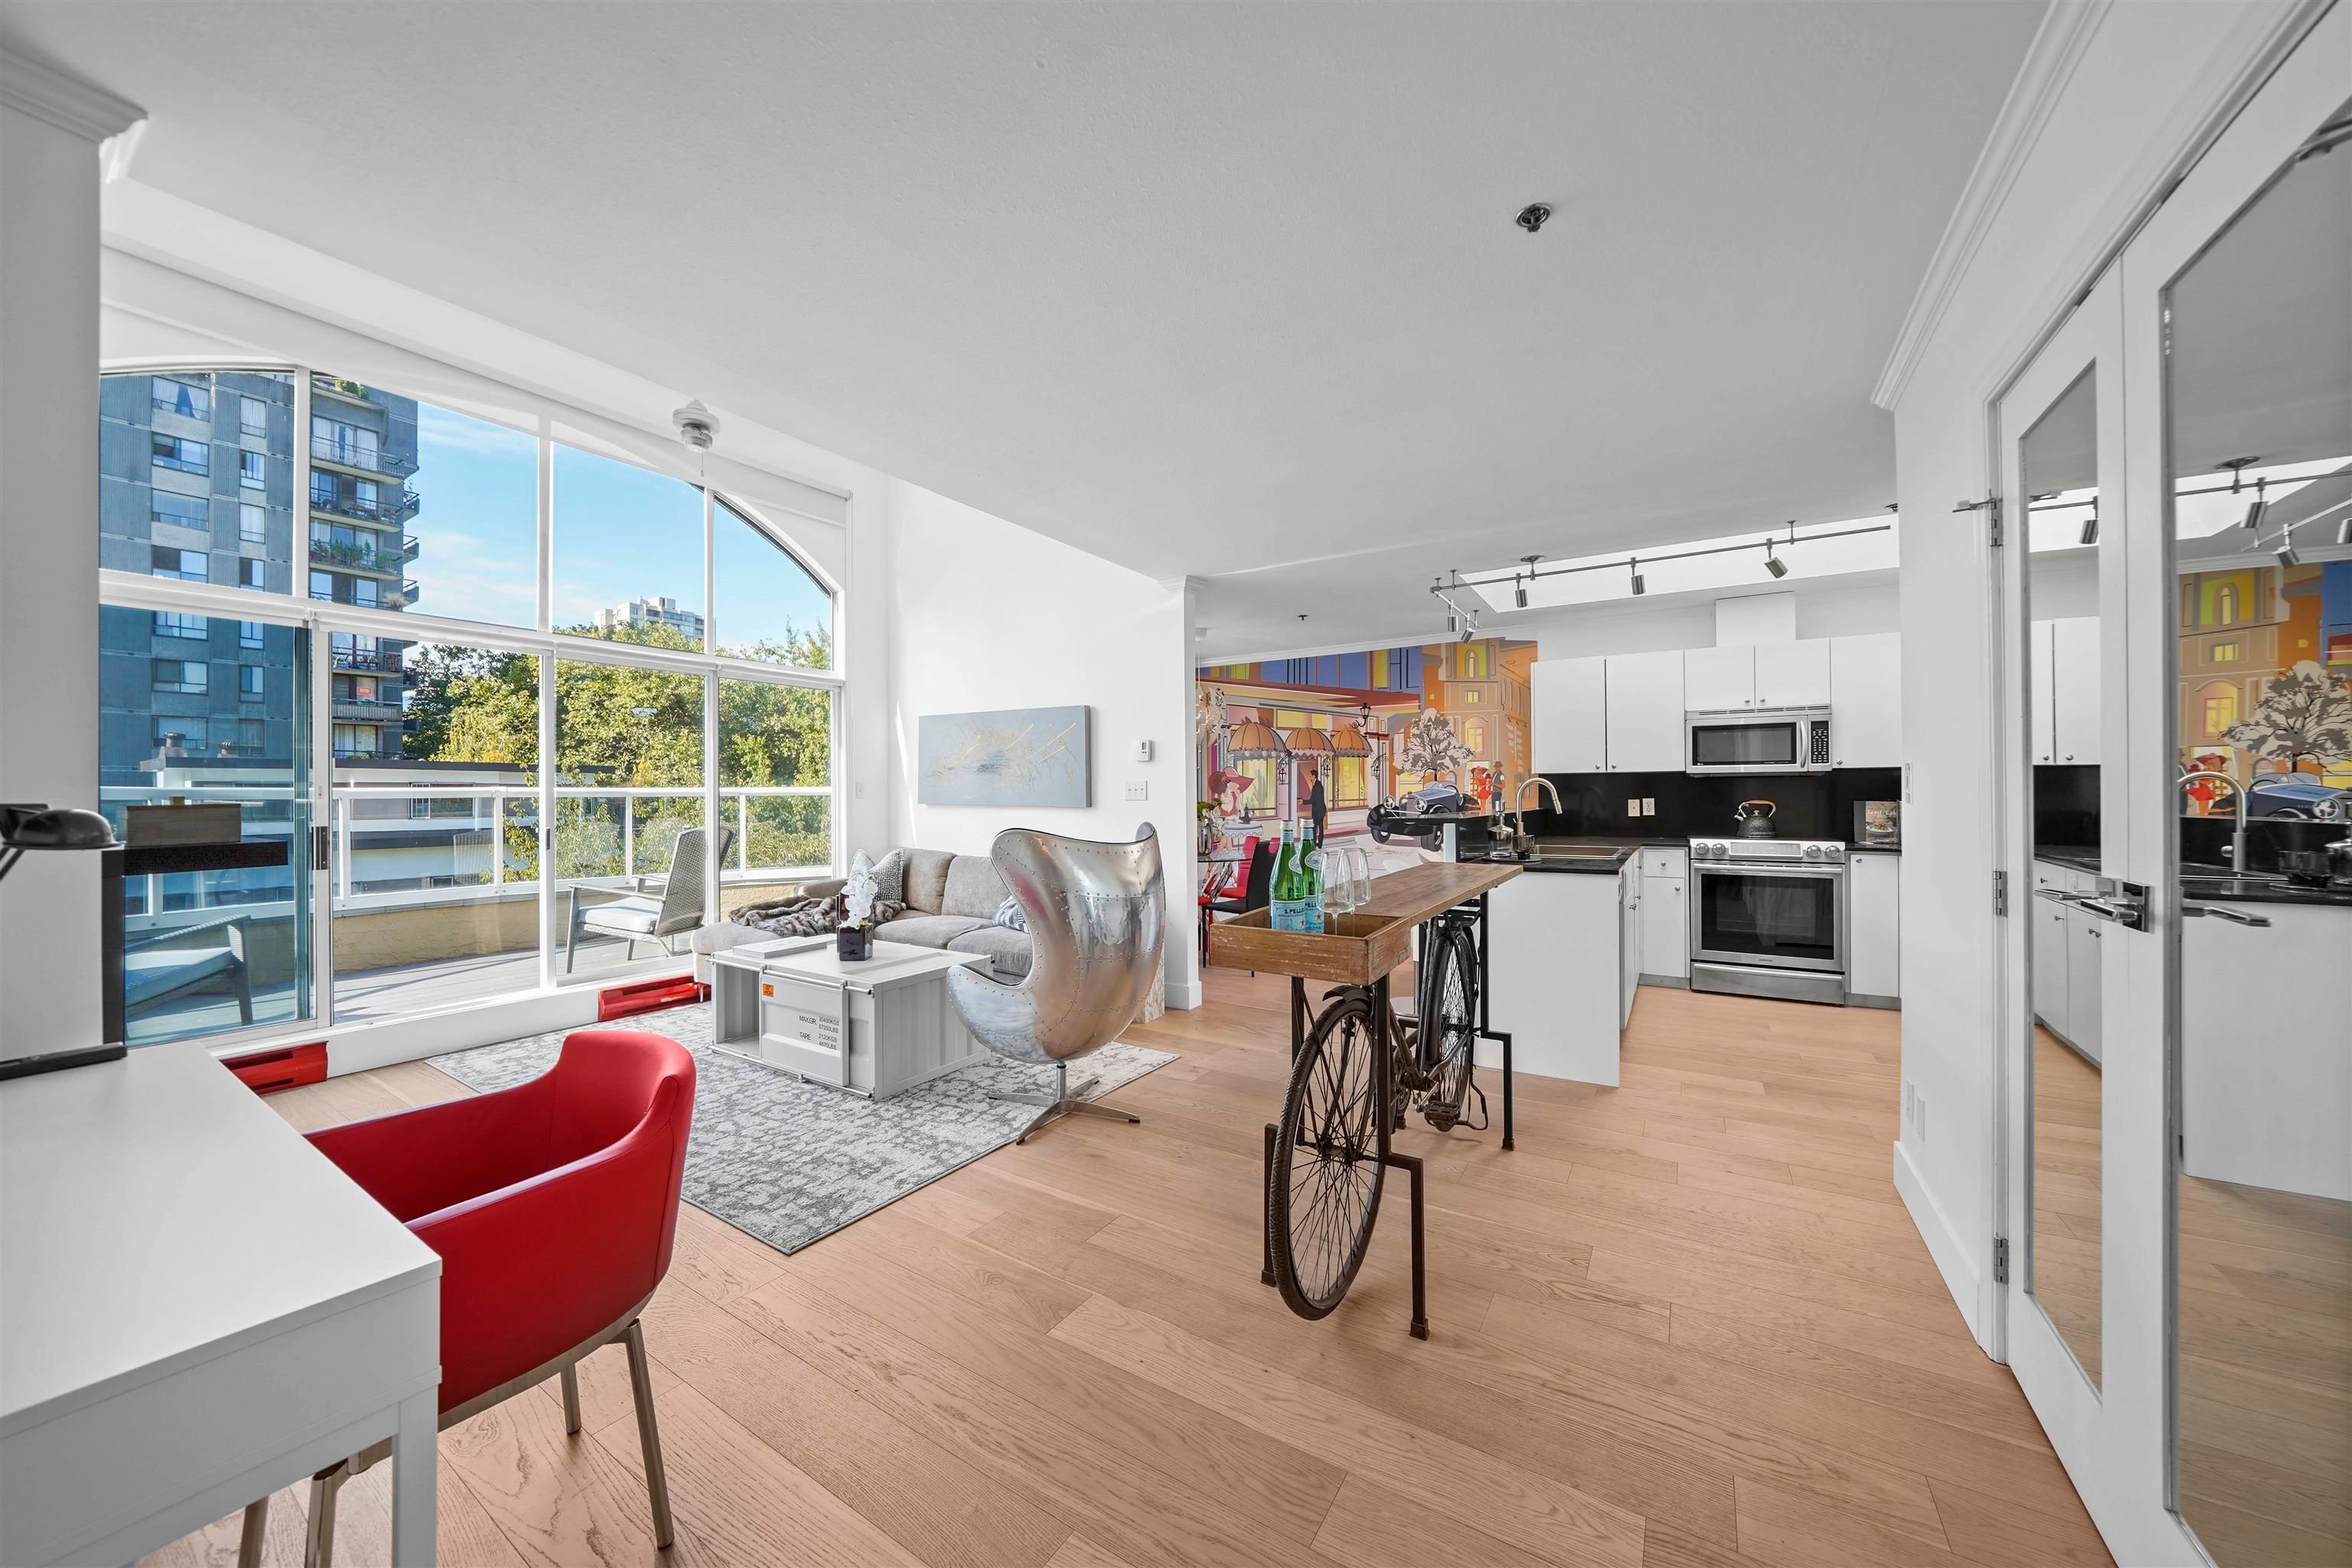 """Main Photo: PH2 950 BIDWELL Street in Vancouver: West End VW Condo for sale in """"The Barclay"""" (Vancouver West)  : MLS®# R2617906"""